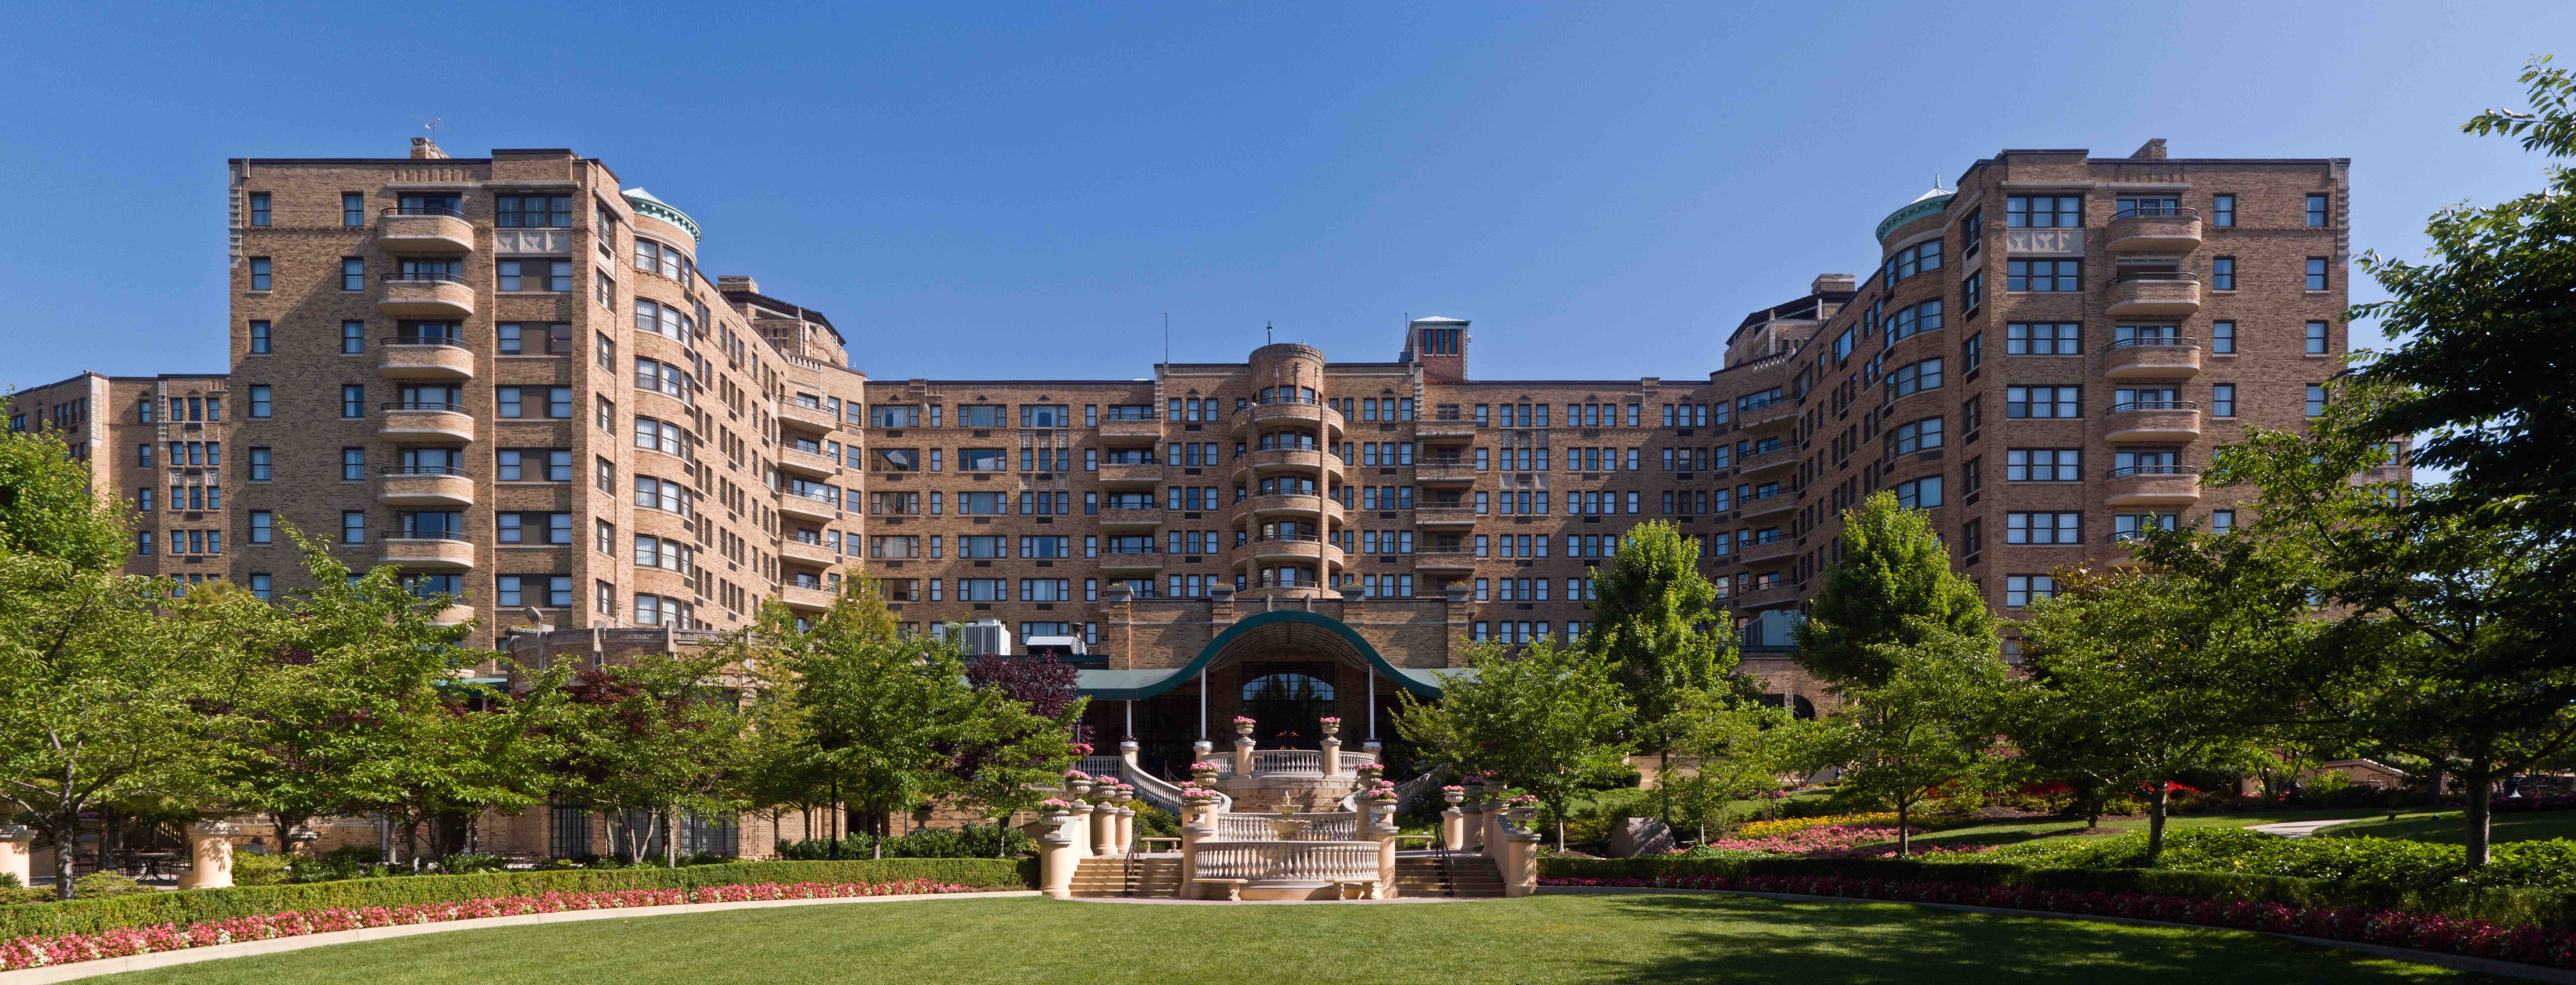 Omni_Shoreham_Hotel_from_the_south_on_a_sunny_summ